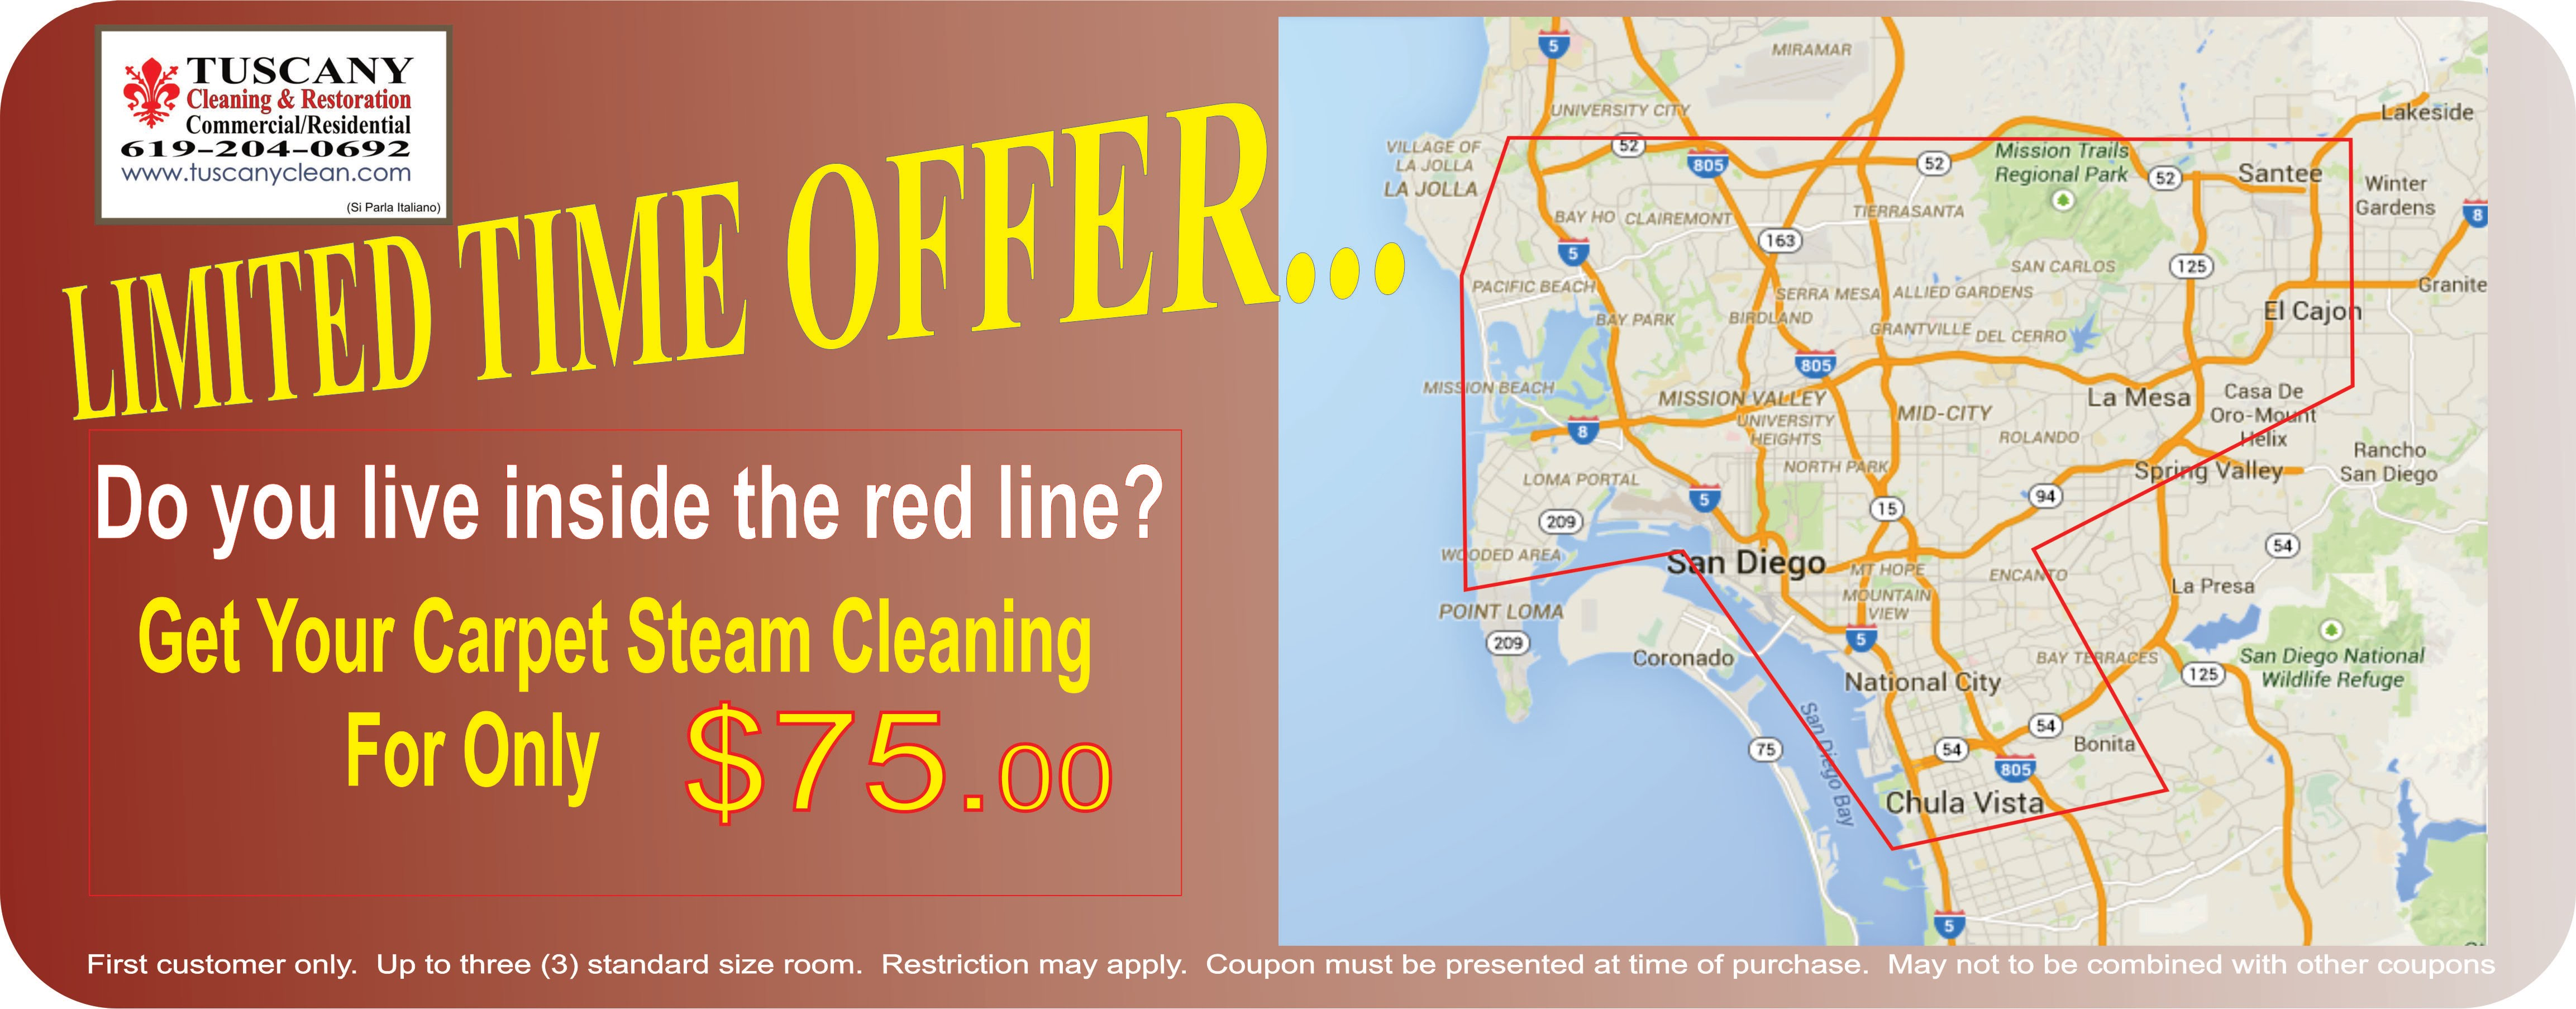 Google Map San Diego Carpet Cleaning service coupon discount offer groupon